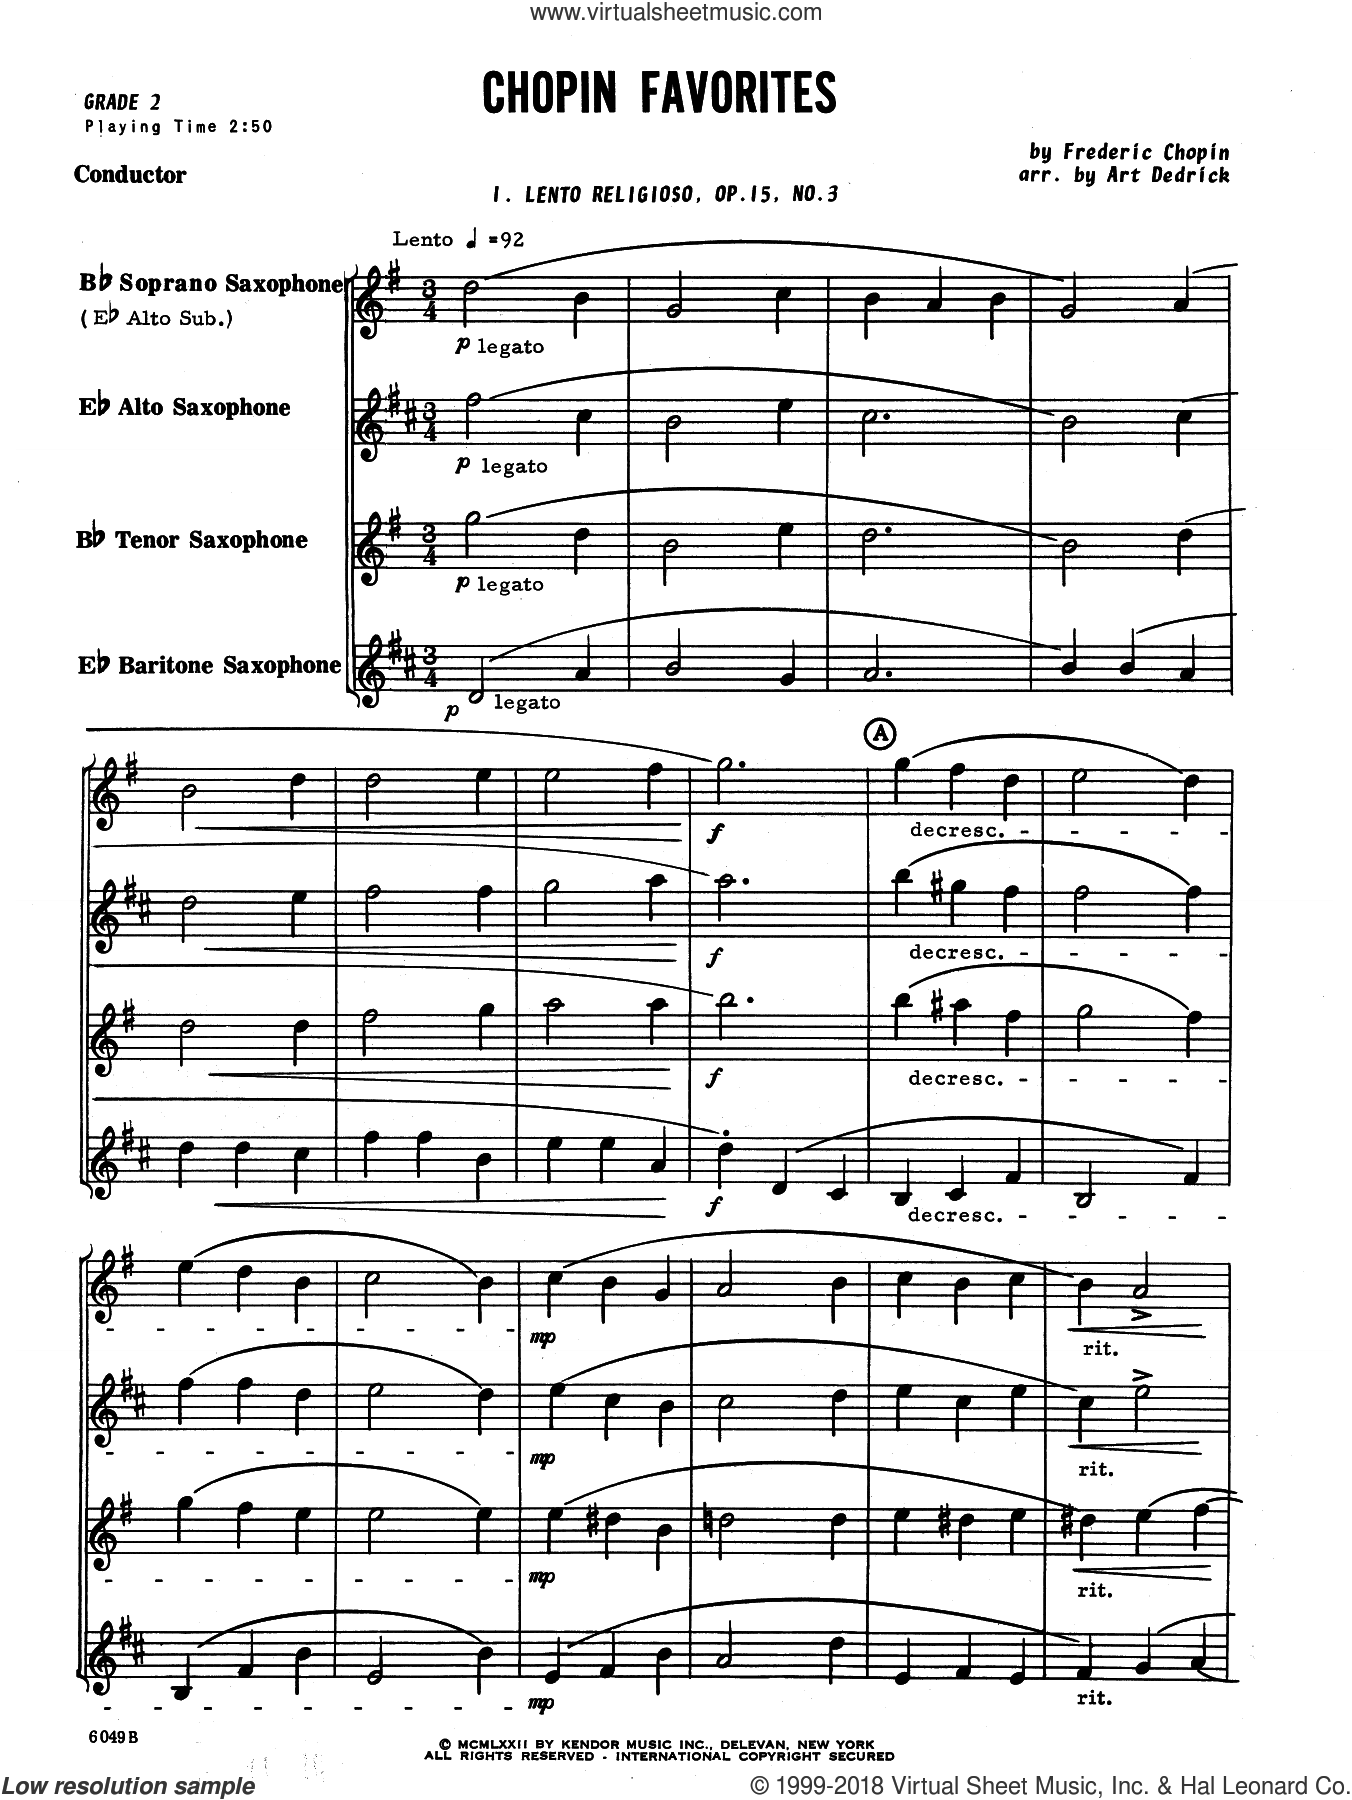 Chopin Favorites (COMPLETE) sheet music for saxophone quartet by Frederic Chopin and Art Dedrick, classical score, intermediate. Score Image Preview.